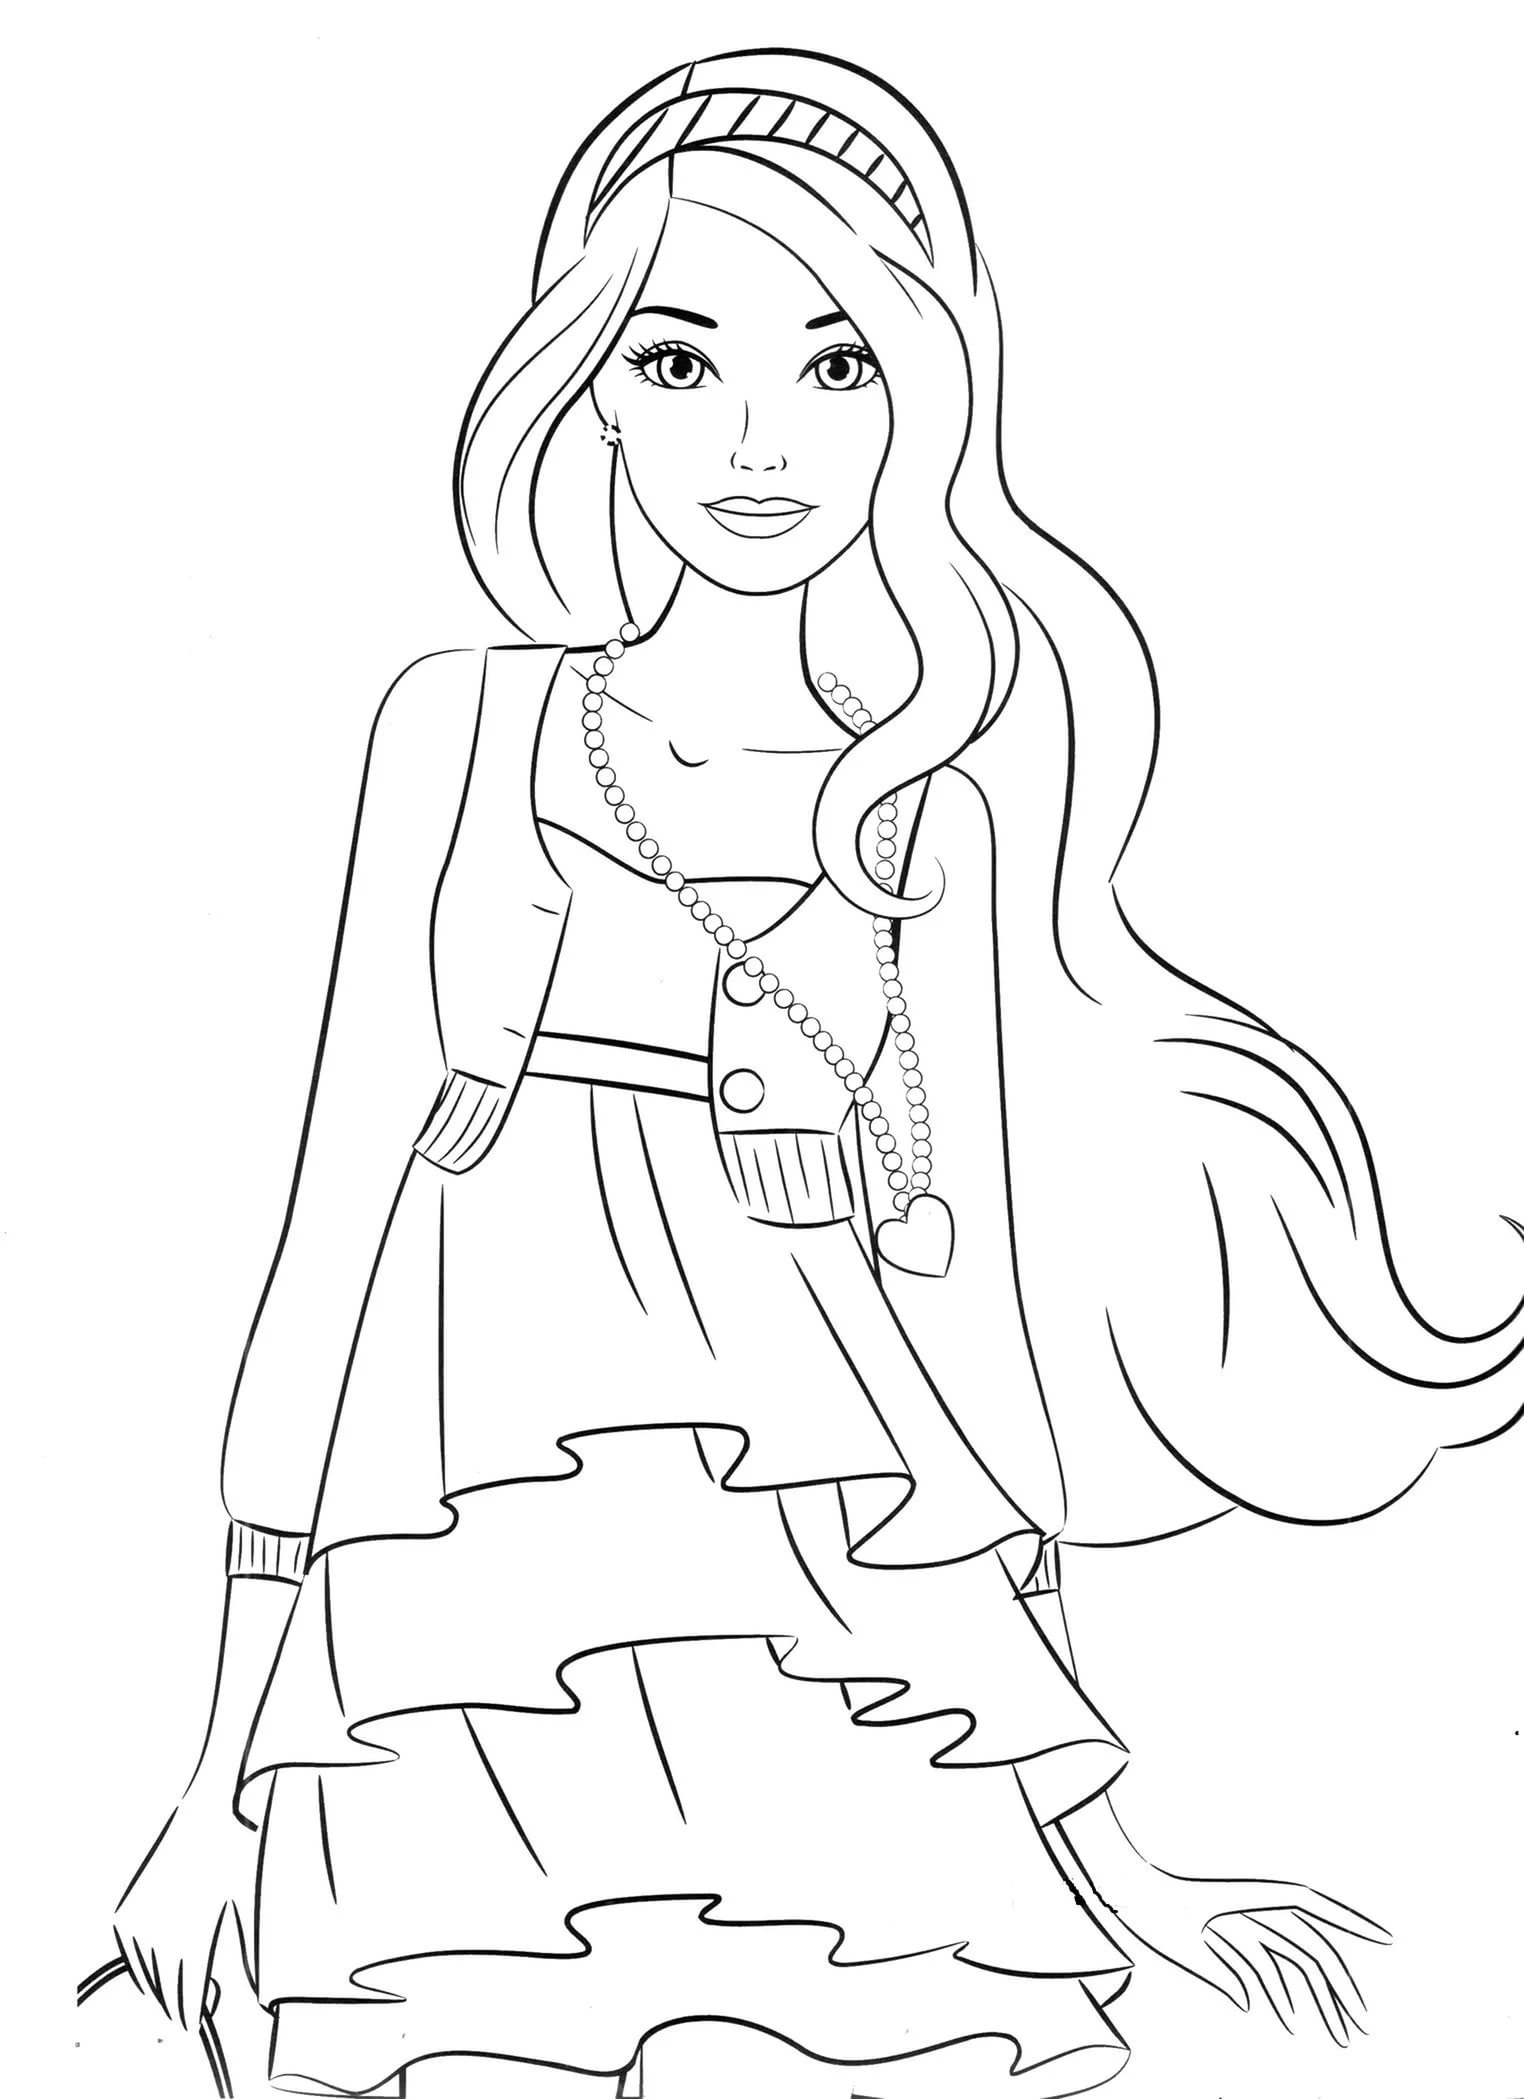 Coloring pages 10 year olds - Ladies Coloring Pages